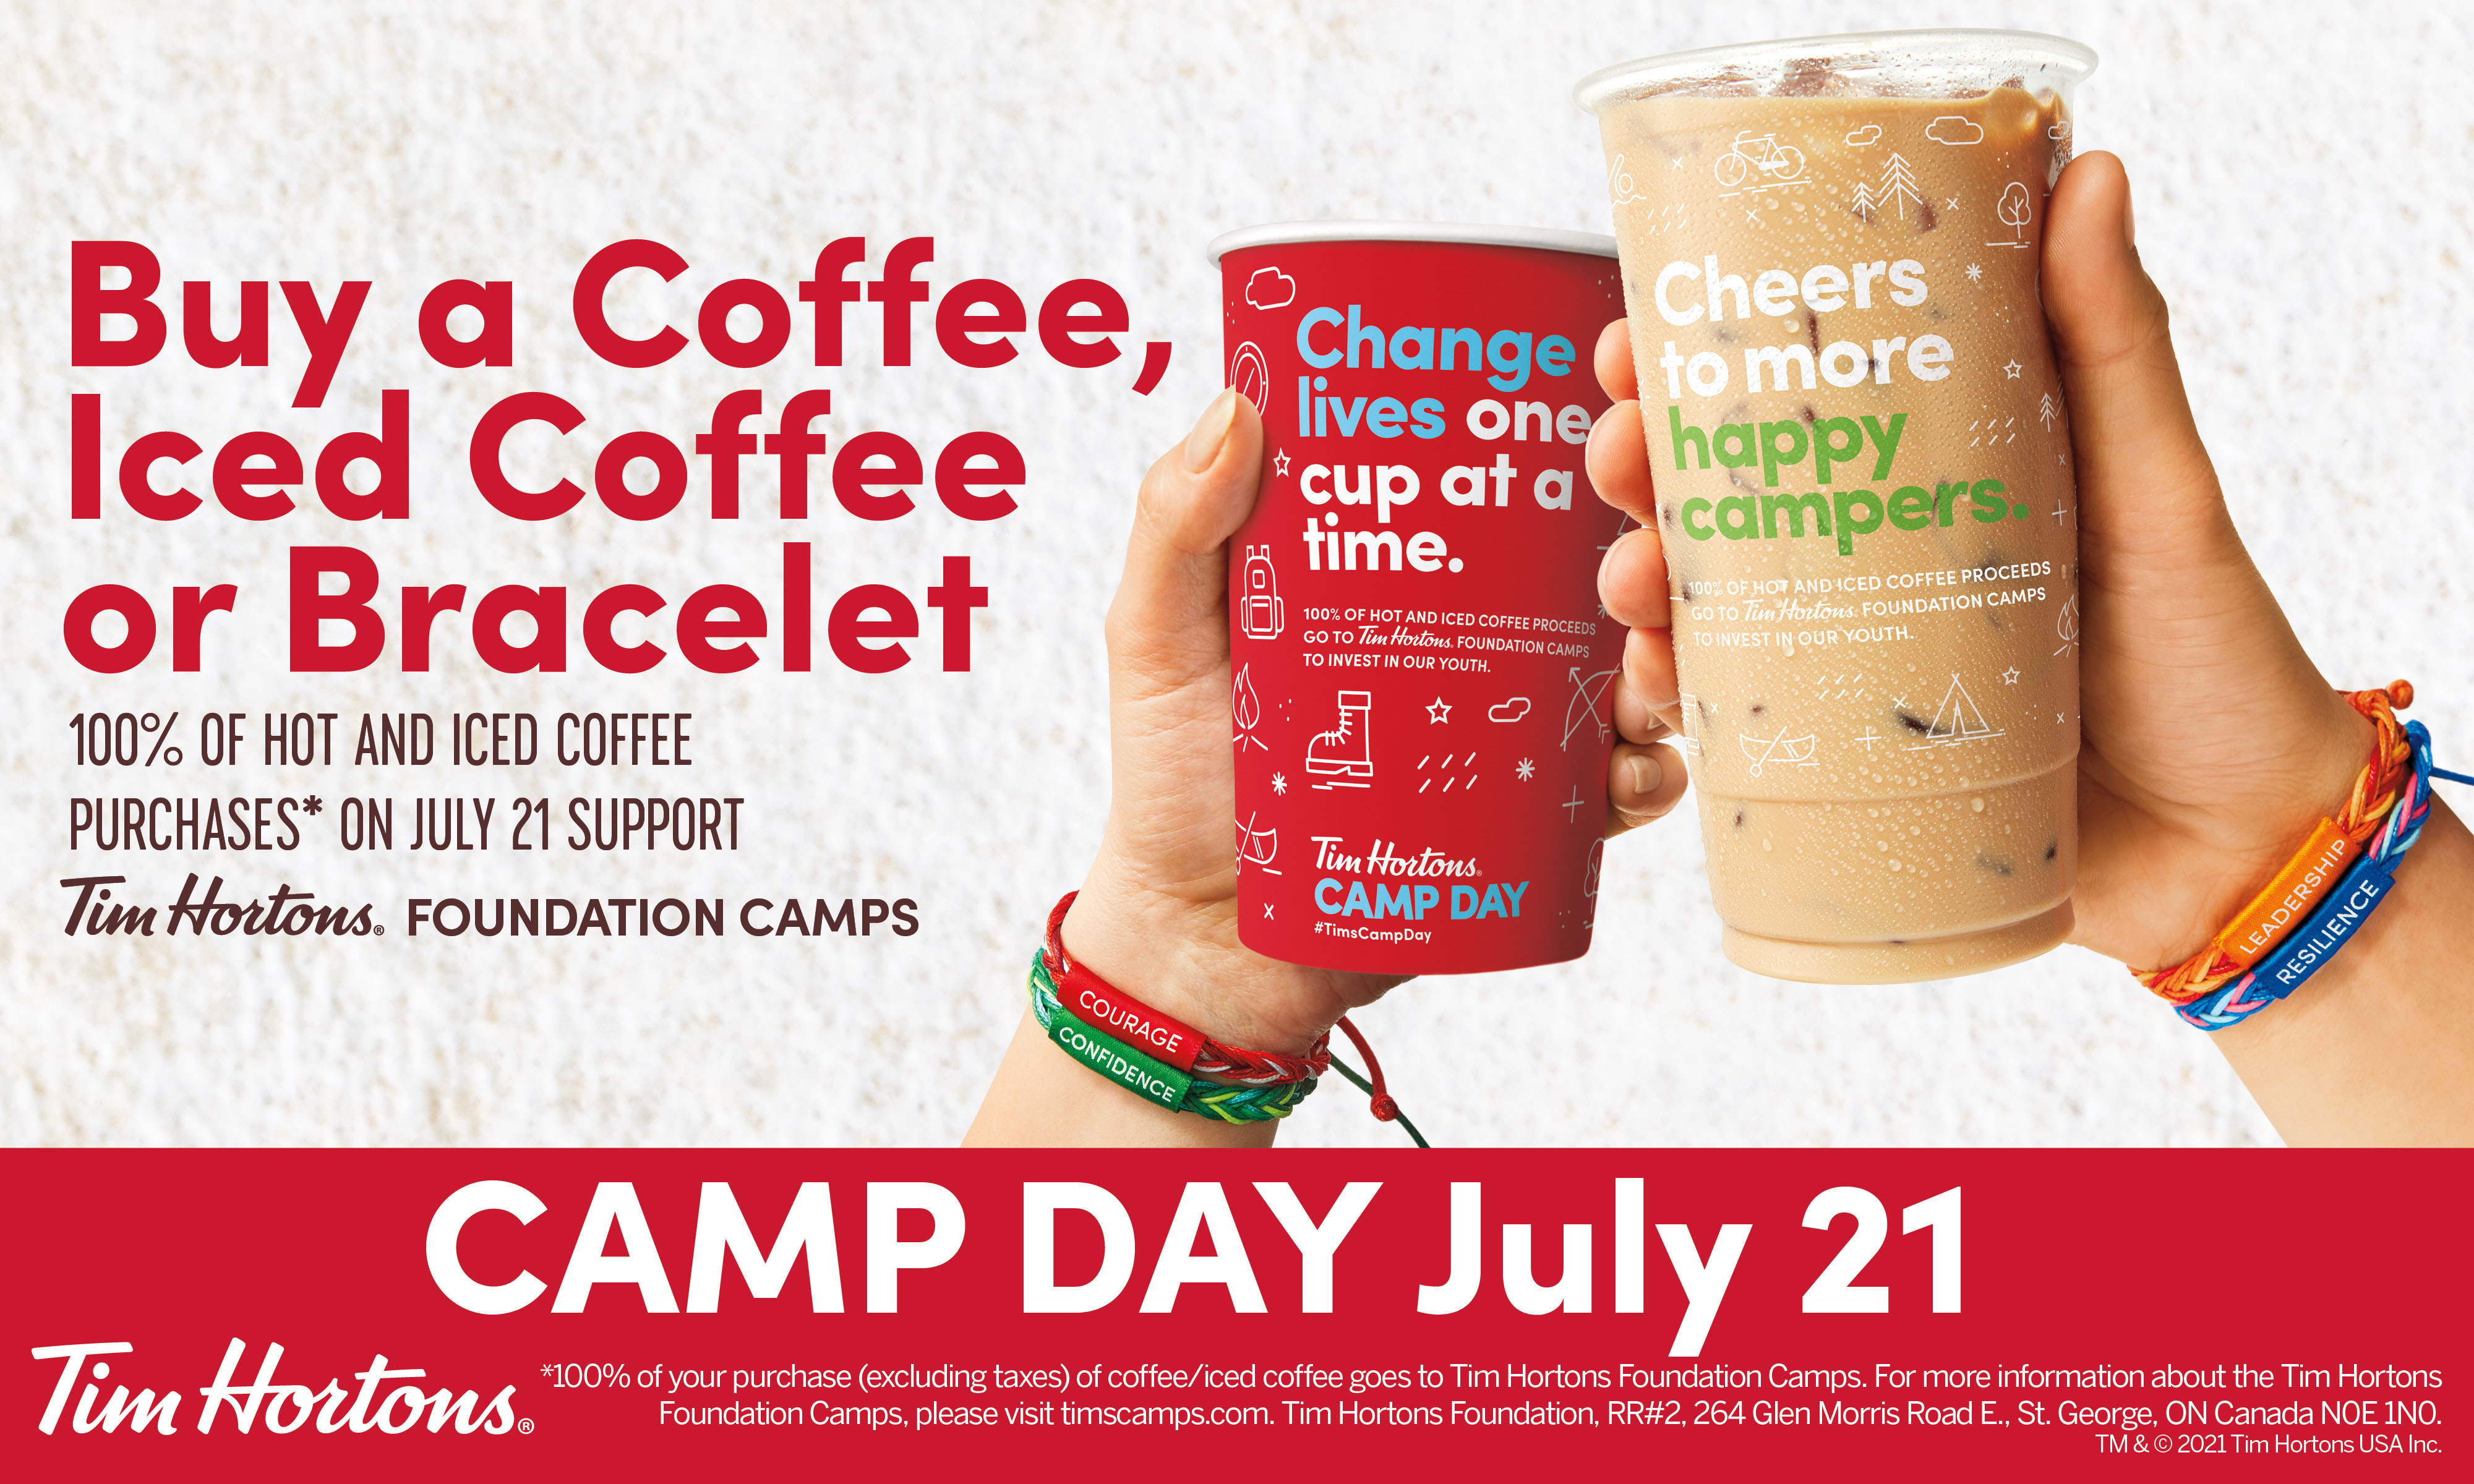 TIM HORTONS® U.S. IS CELEBRATING CAMP DAY ON JULY 21 - CAMPAIGN HAS RAISED OVER $168 MILLION TO SUPPORT YOUTH FROM DISADVANTAGED CIRCUMSTANCES